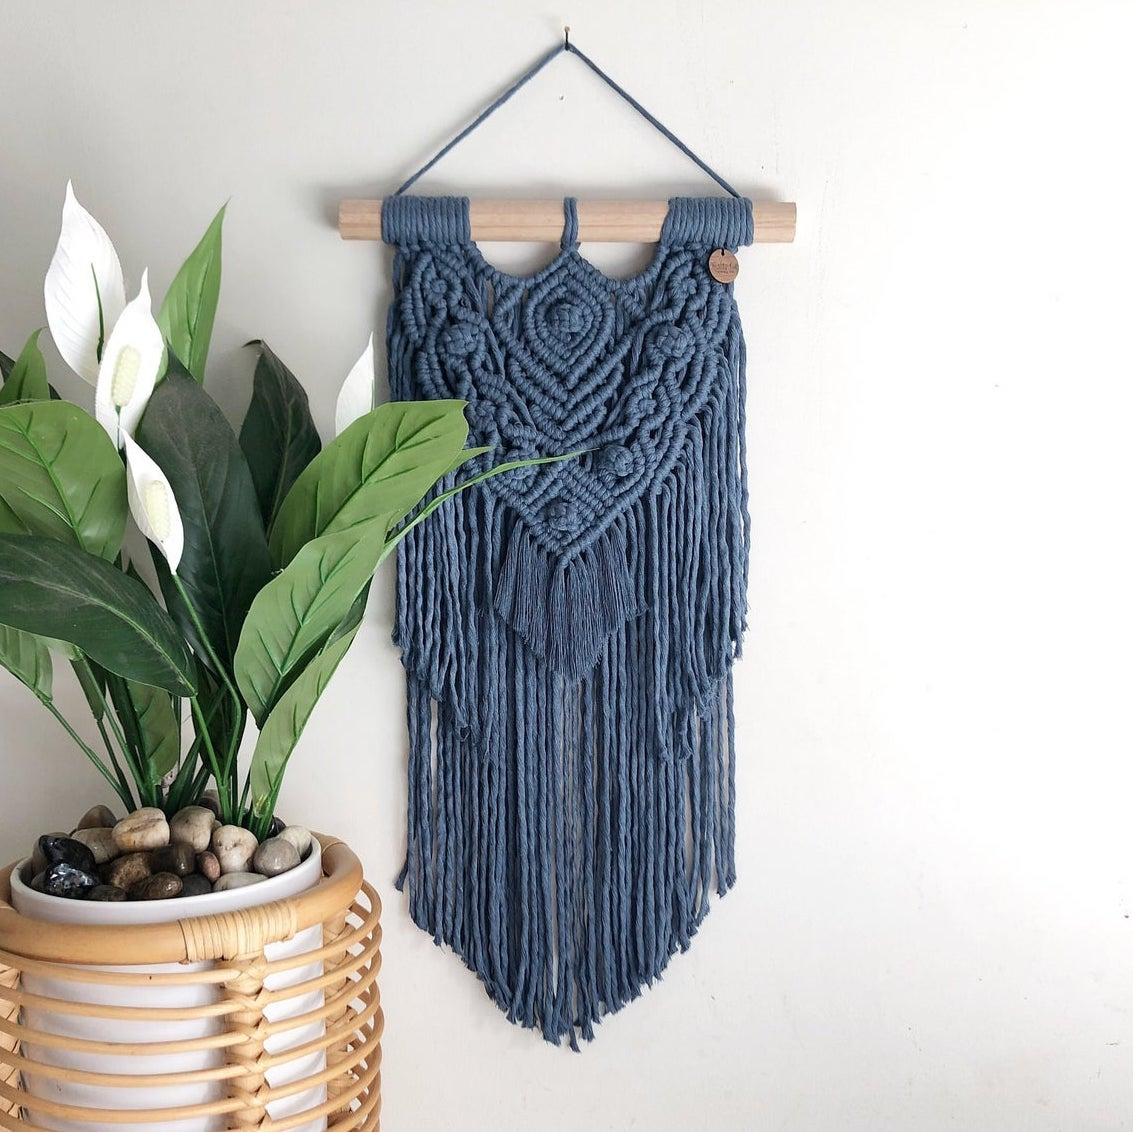 Blue Boho Macrame Wall Hanging gift guide